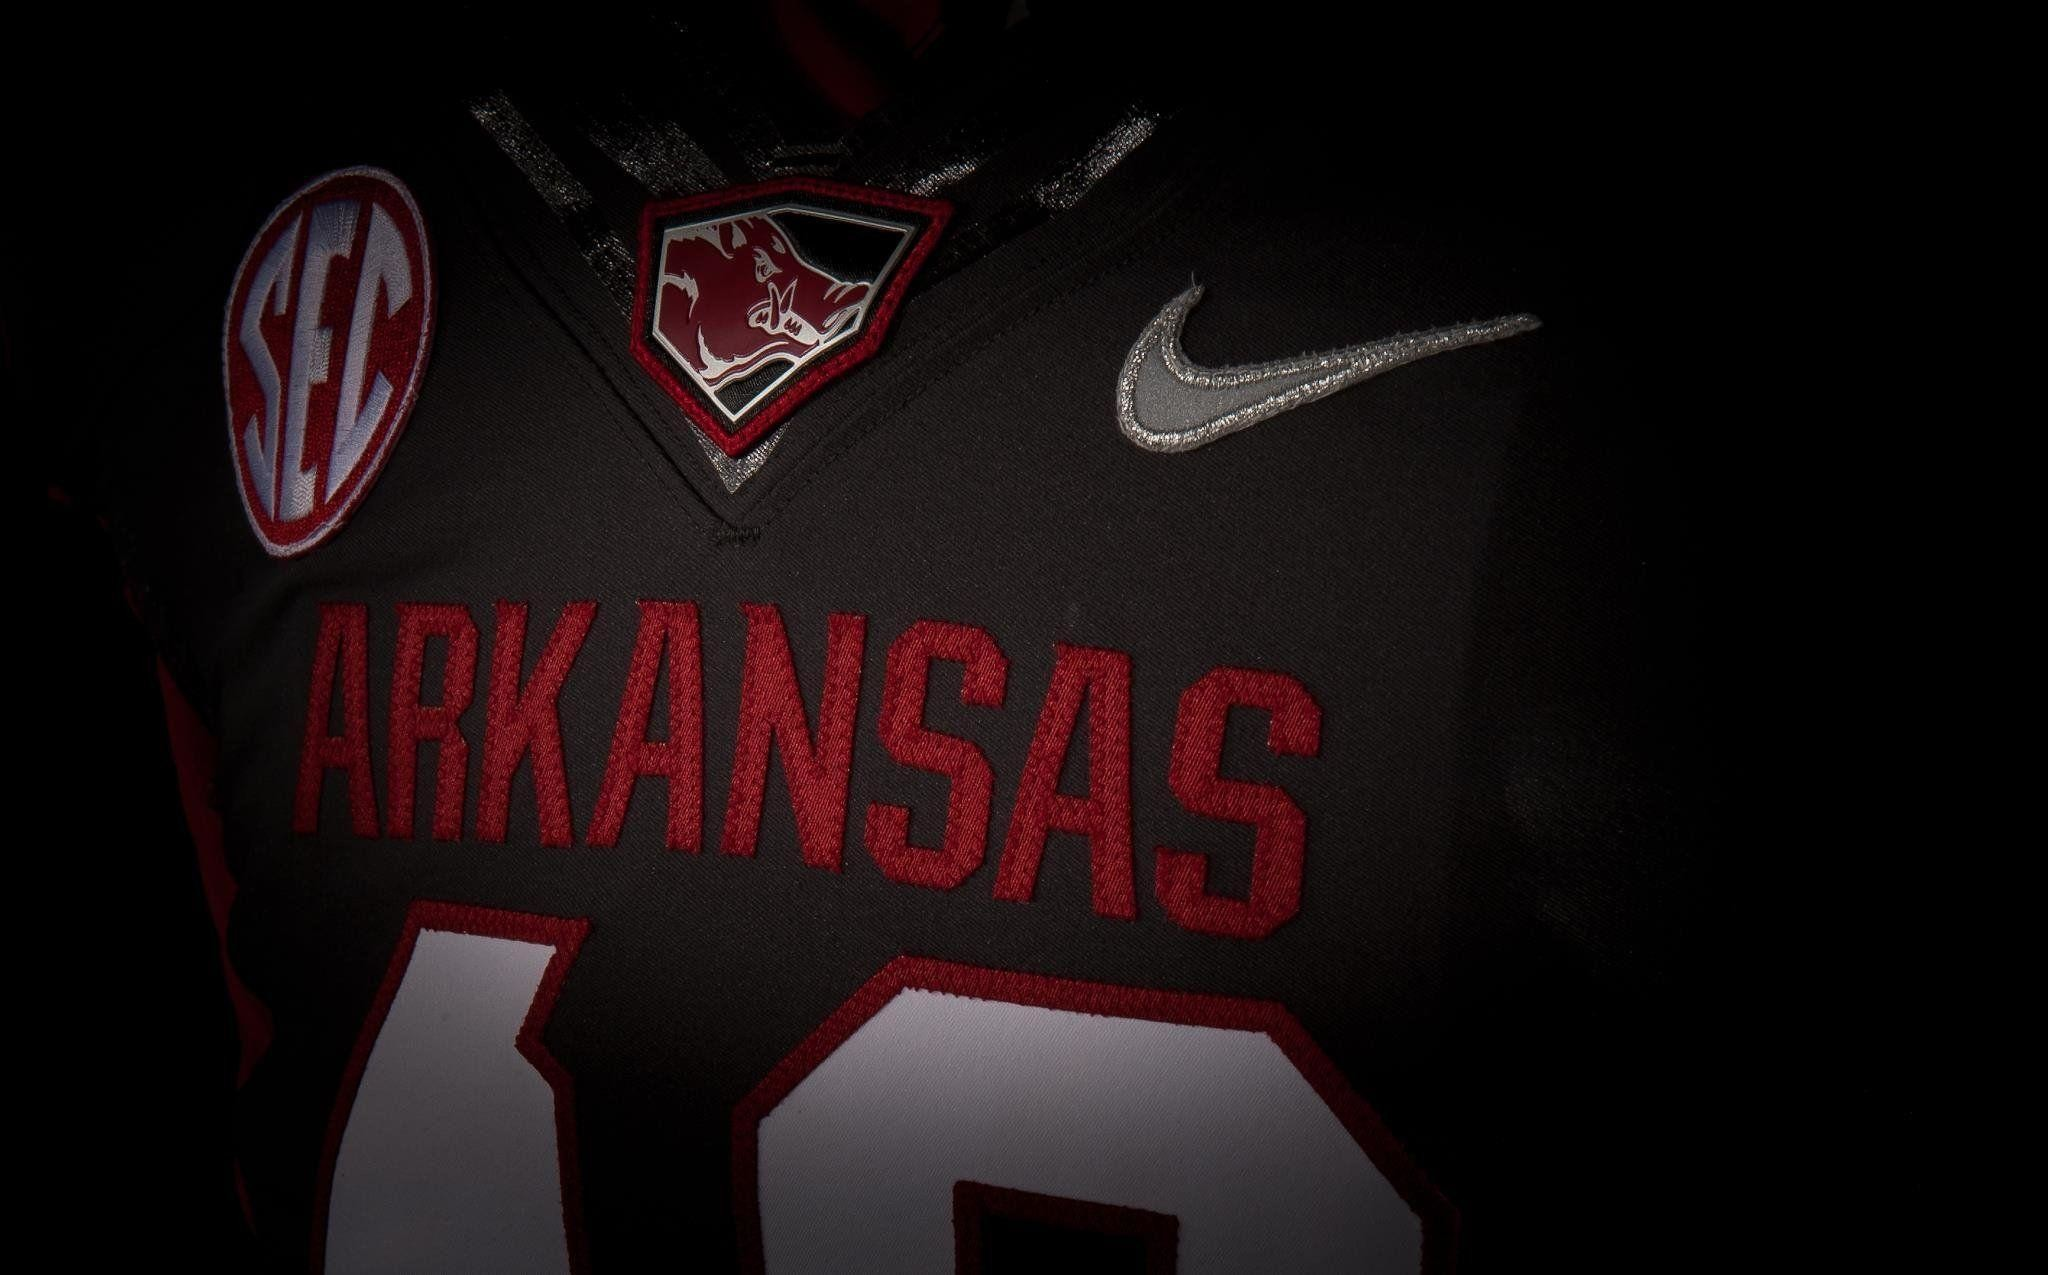 2048x1275 Arkansas Razorback Wallpaper and Screensavers - WallpaperSafari